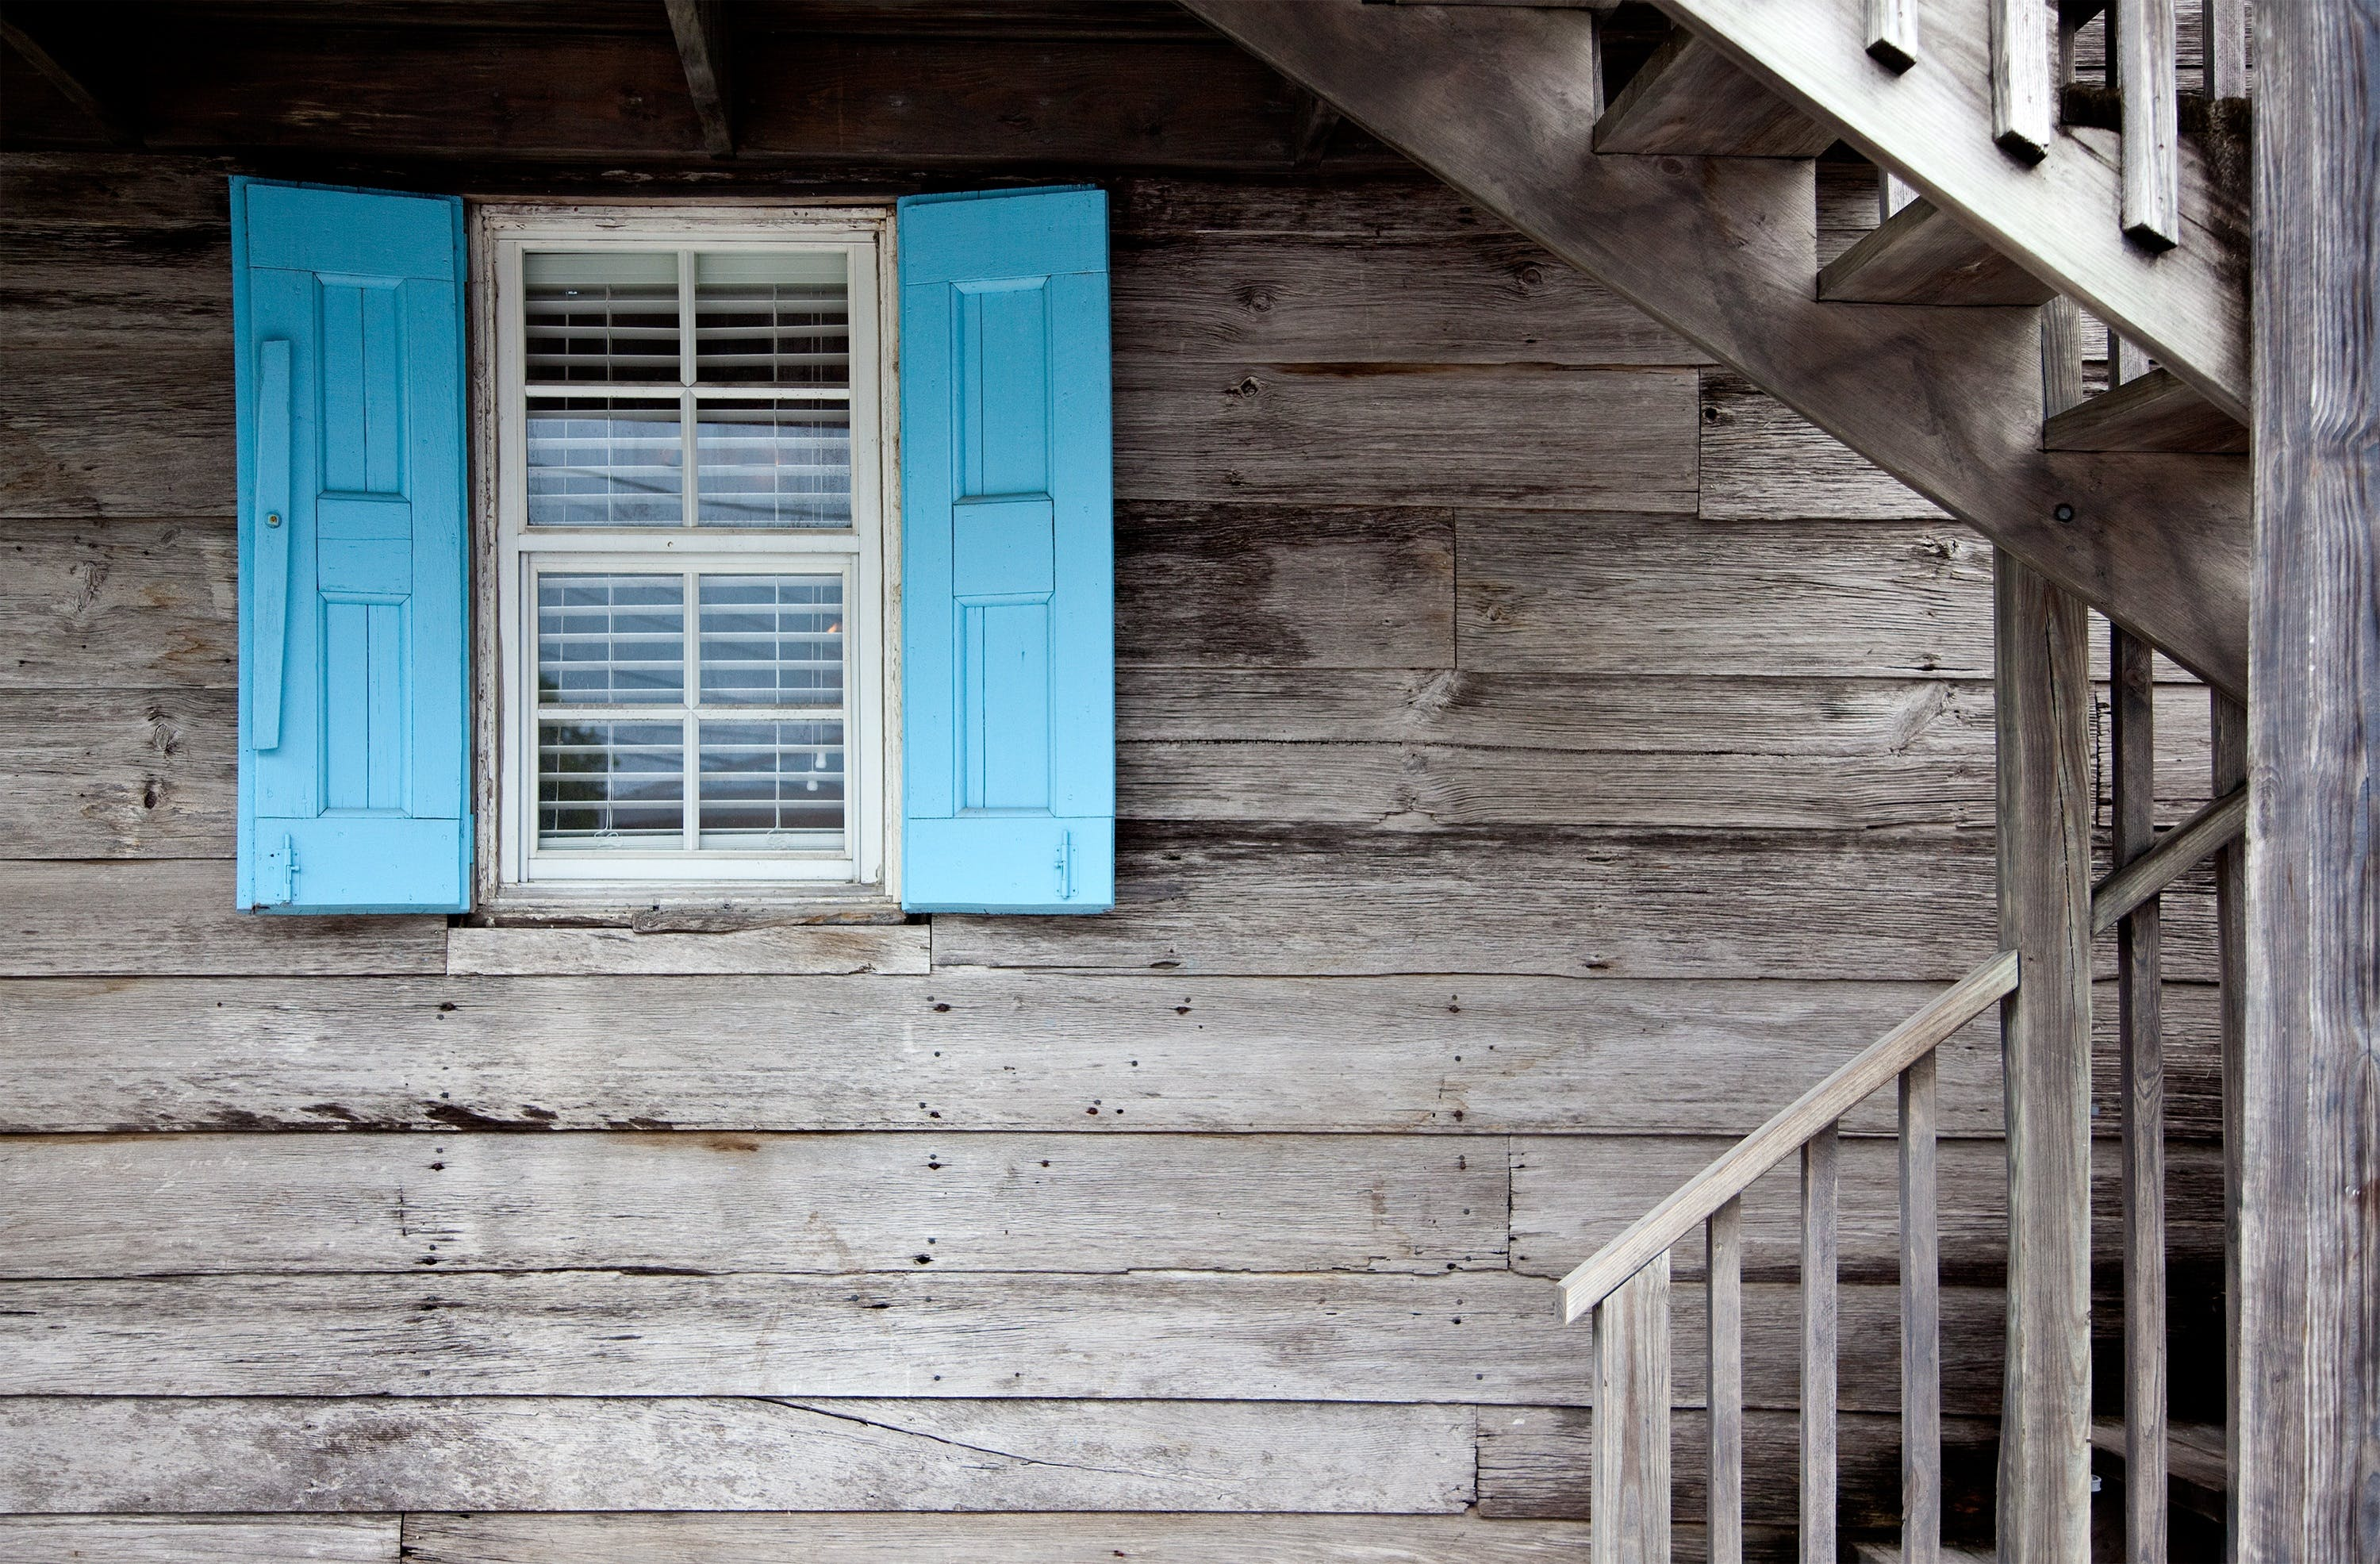 Brown Wooden Stair and Blue Window